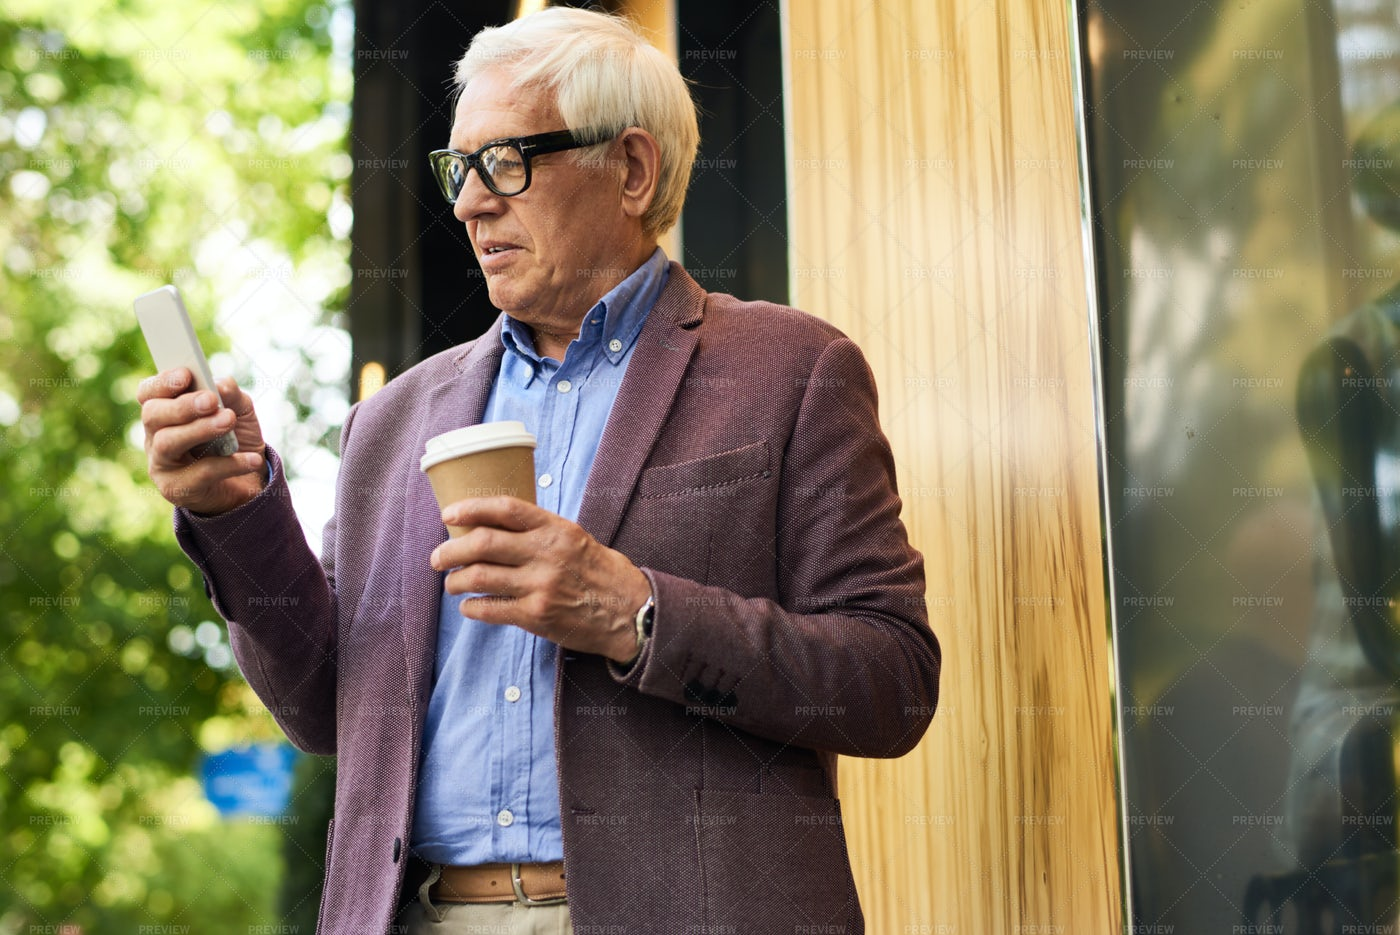 Modern  Senior Man With Smartphone: Stock Photos